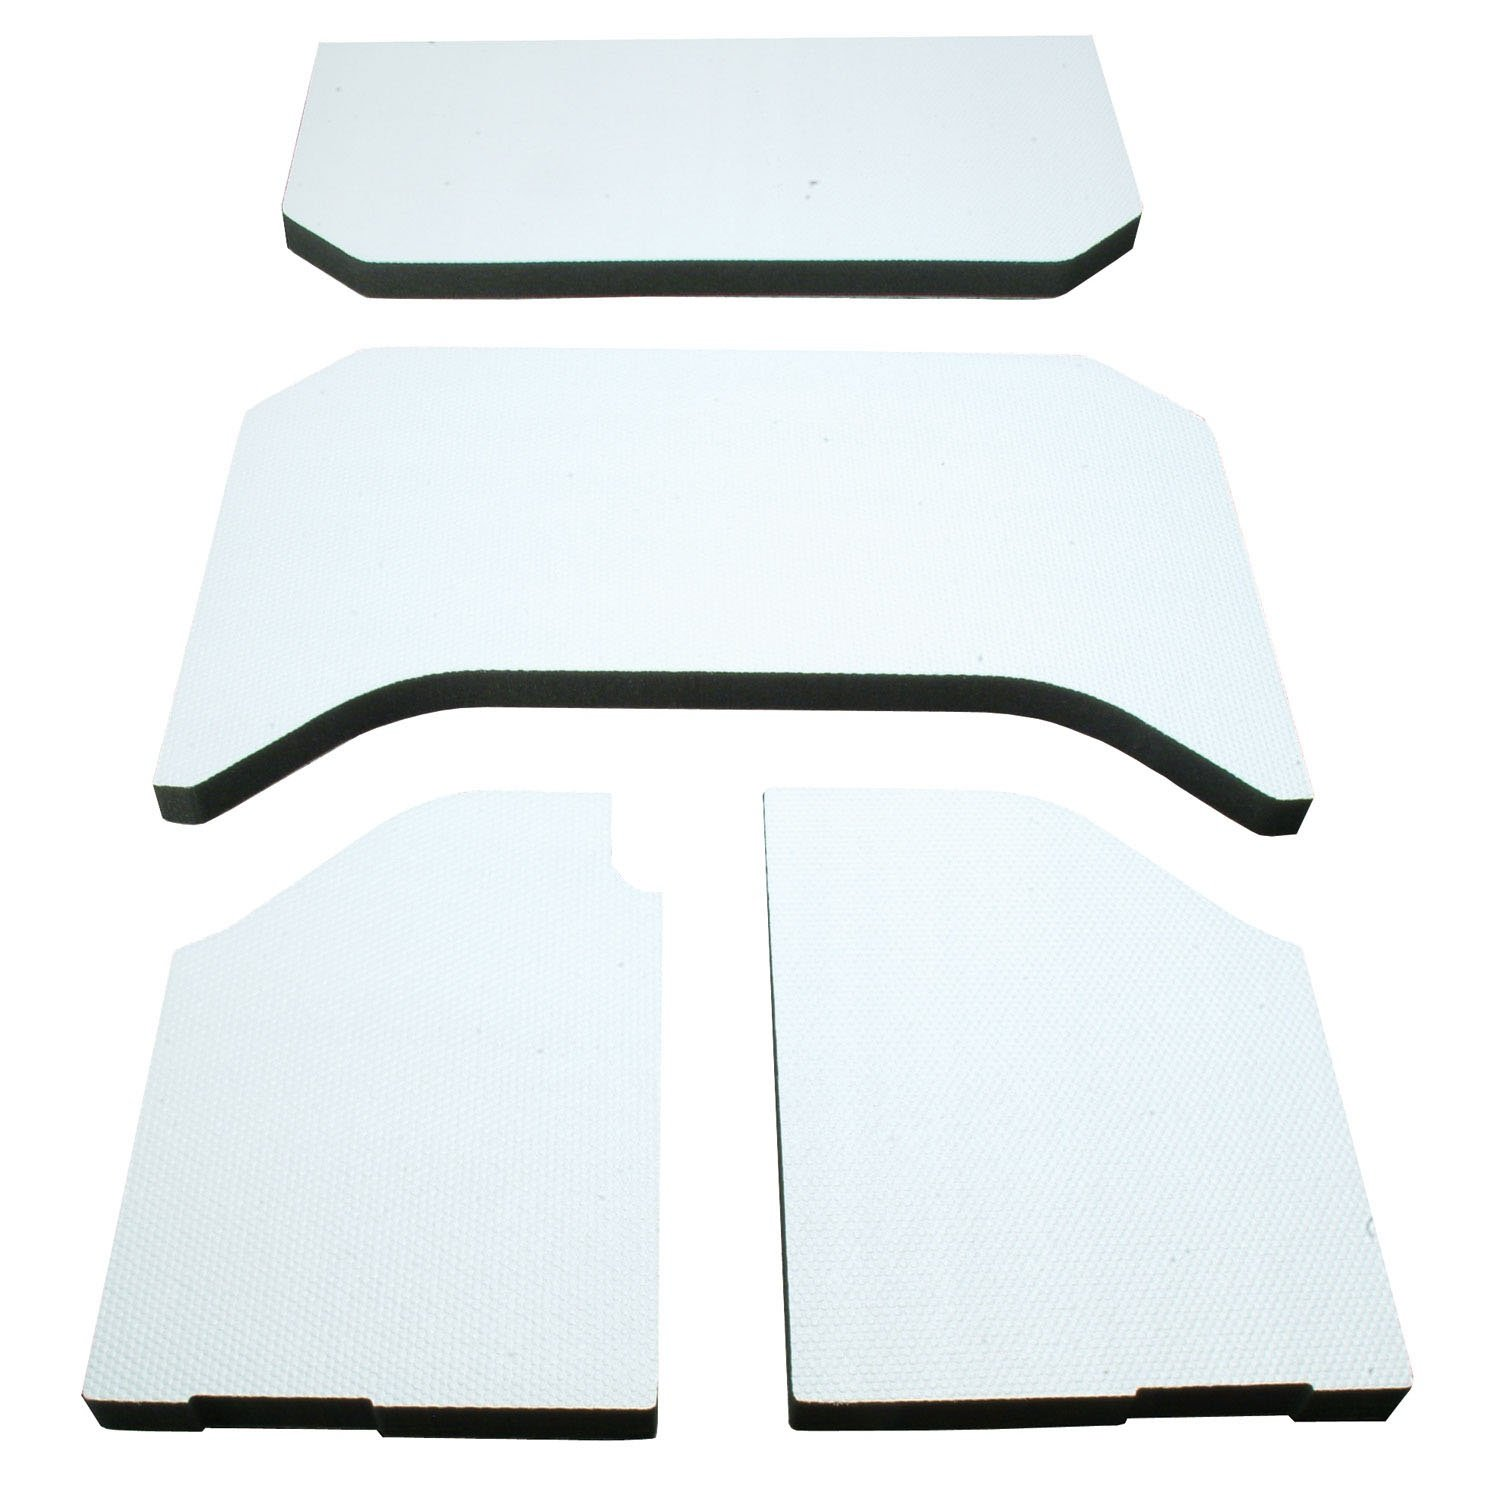 DEI 050141 Boom Mat Sound Deadening Headliner for 4-Door Jeep Wrangler (2011-2016) - White